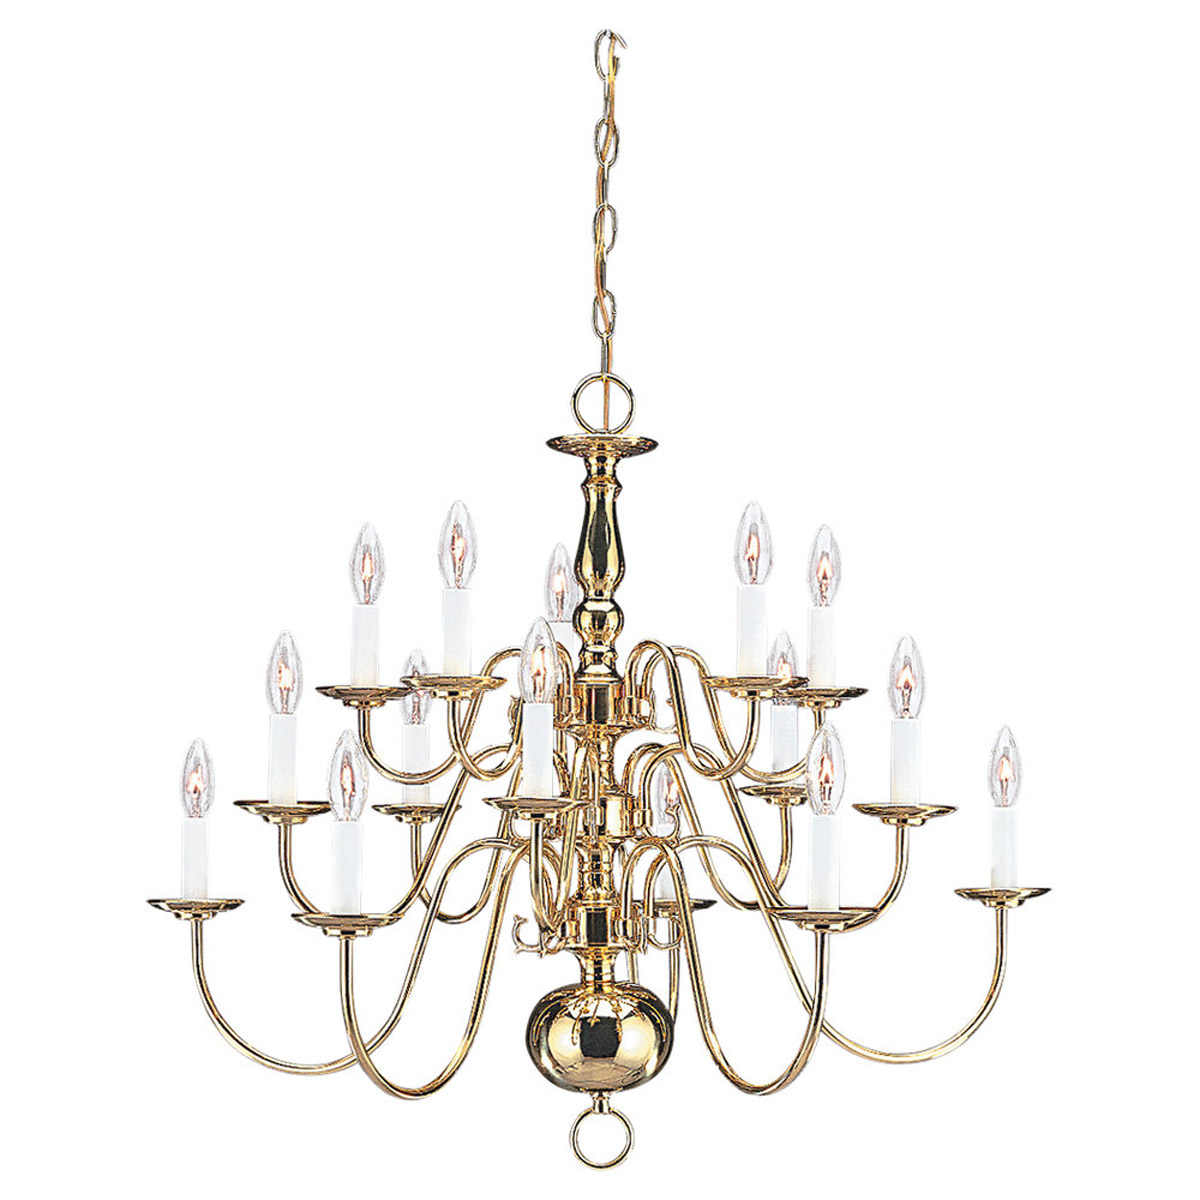 Sea Gull Lighting Traditional 15 Light Chandelier in Polished Brass 3414-02